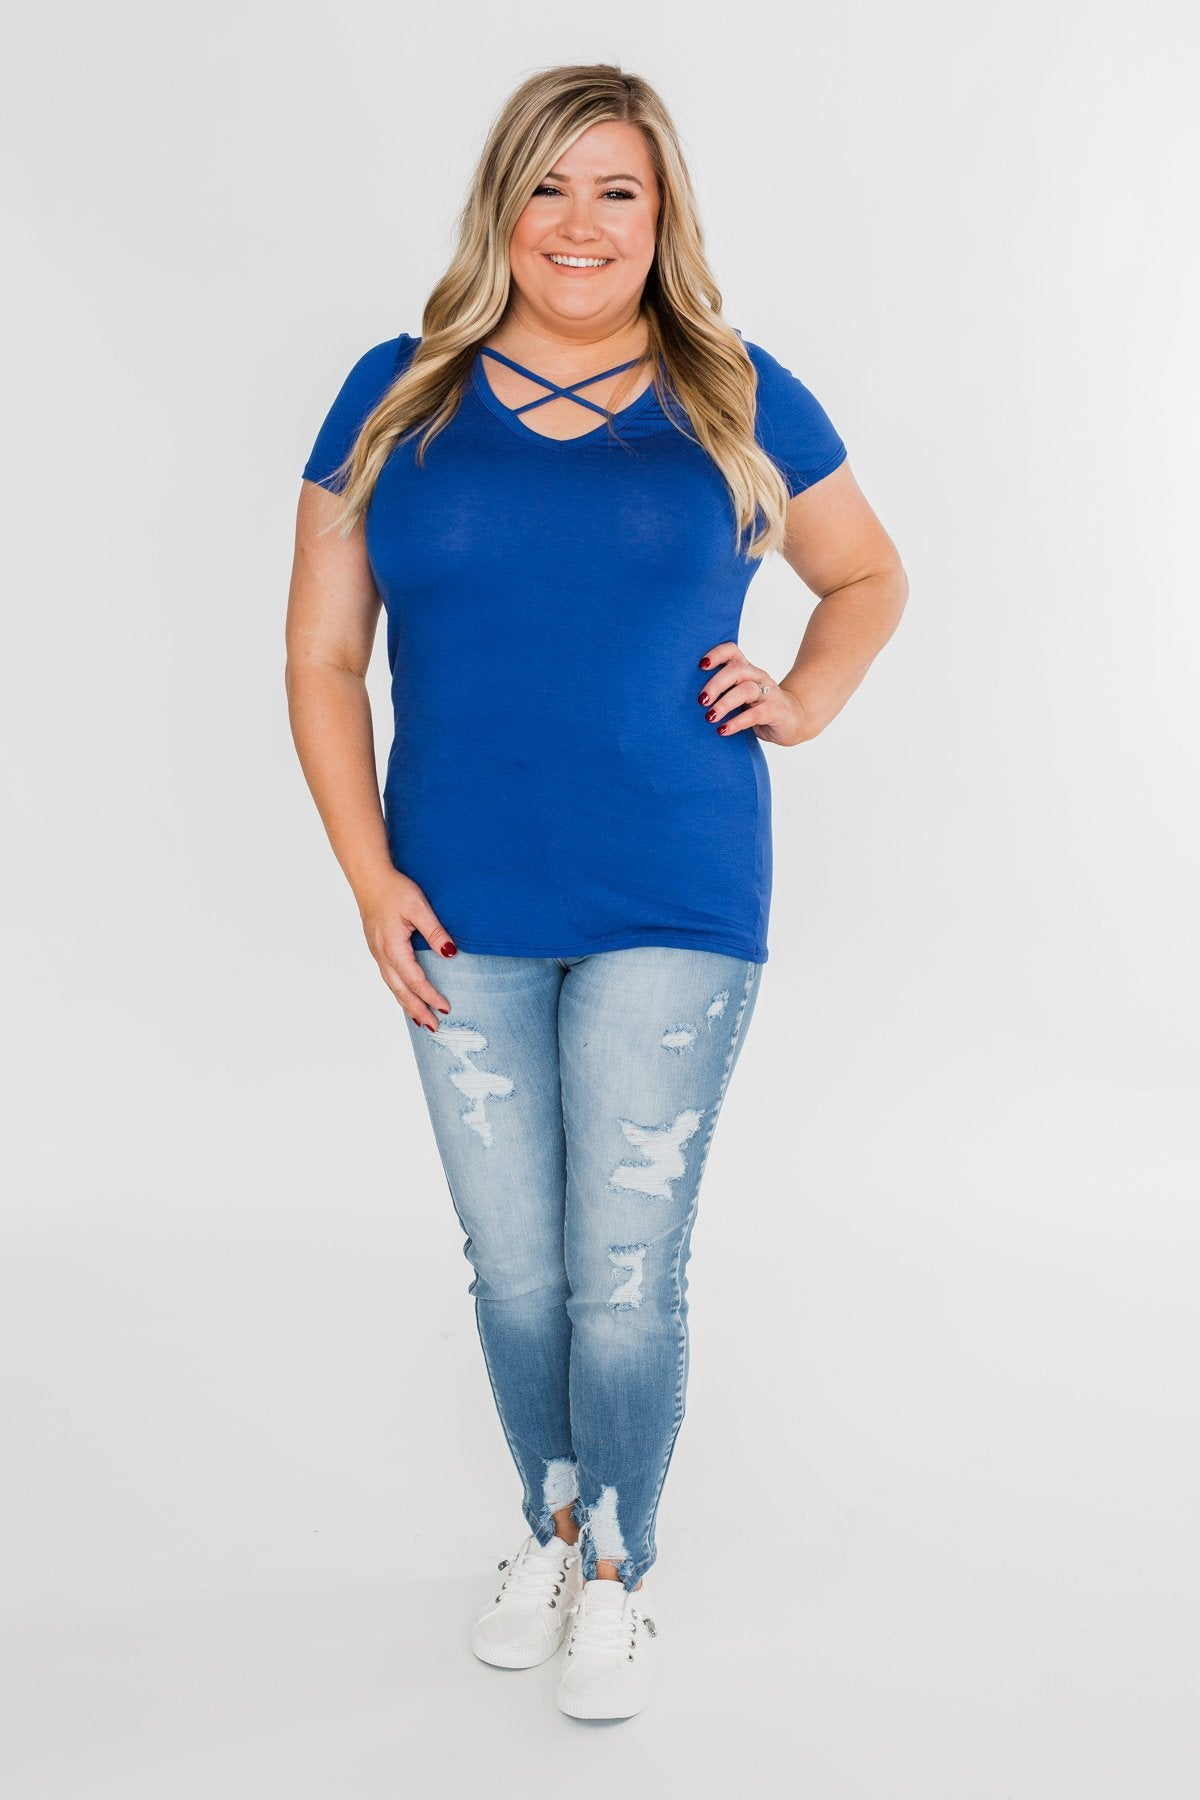 Deeply Impressed Criss Cross Top- Royal Blue